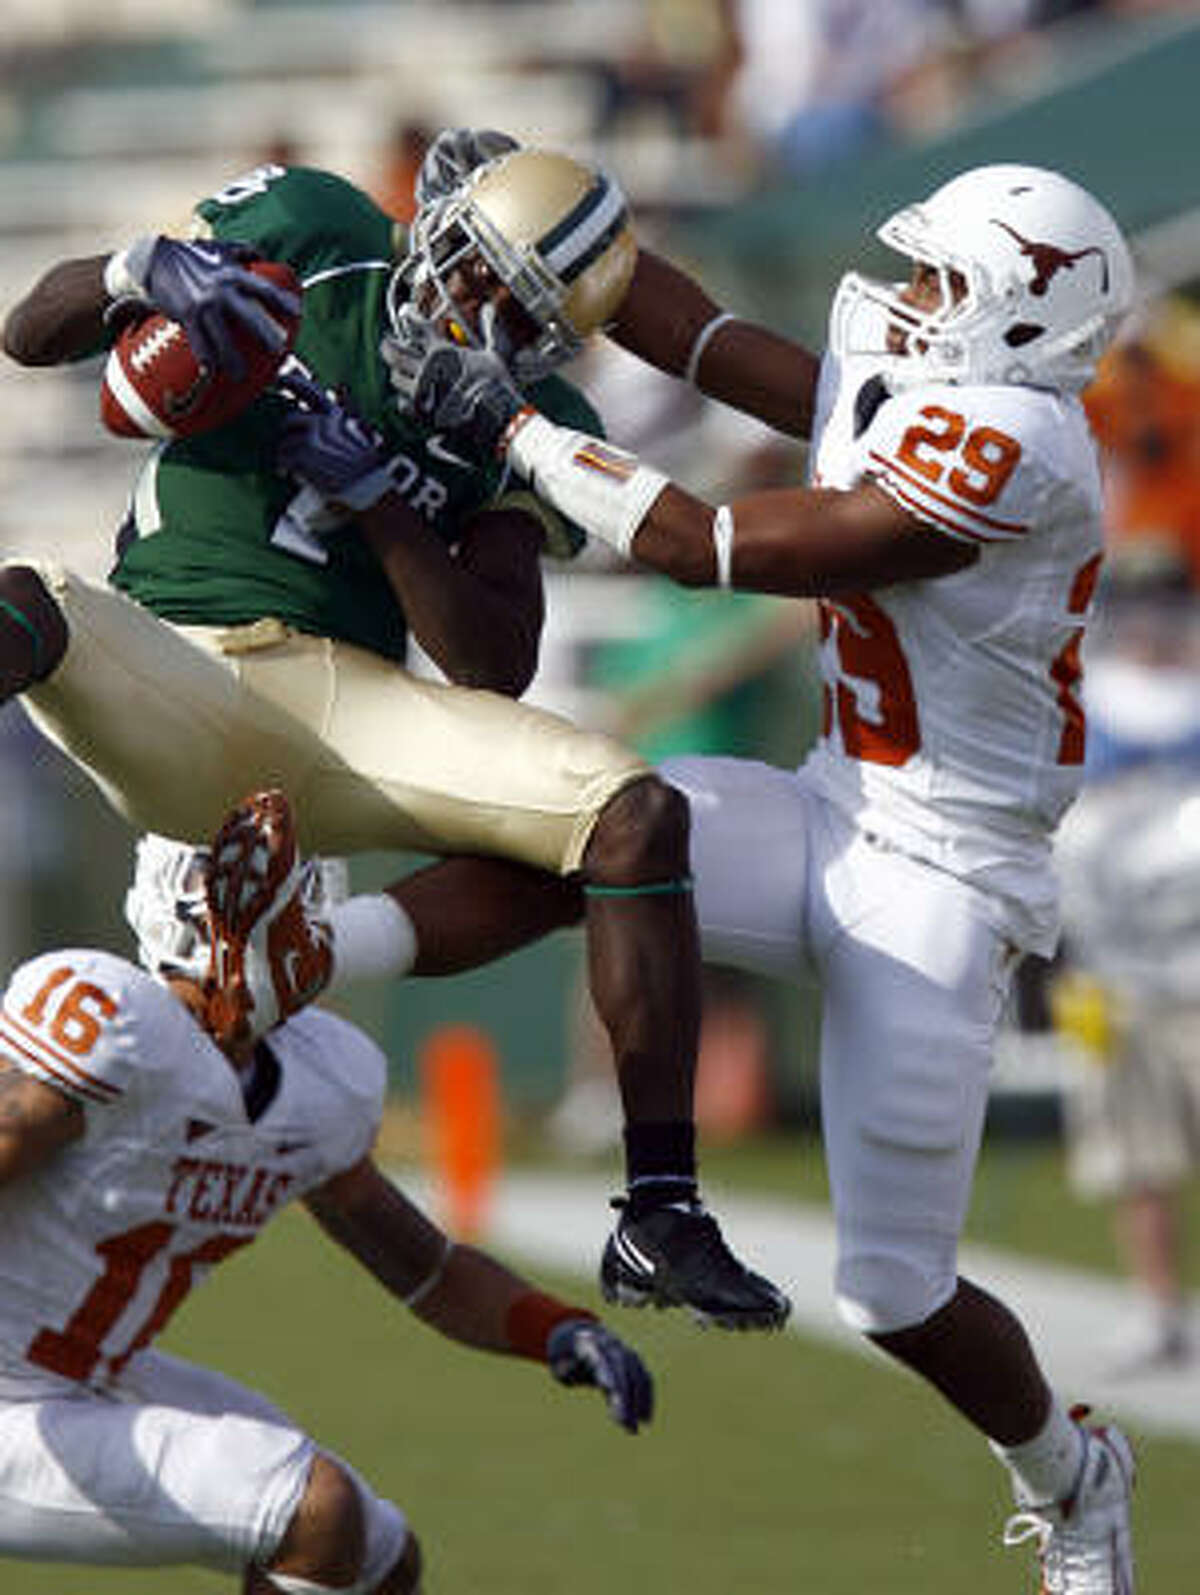 Baylor receiver Kendall Wright pulls in a pass against Texas defensive back Clark Ford.